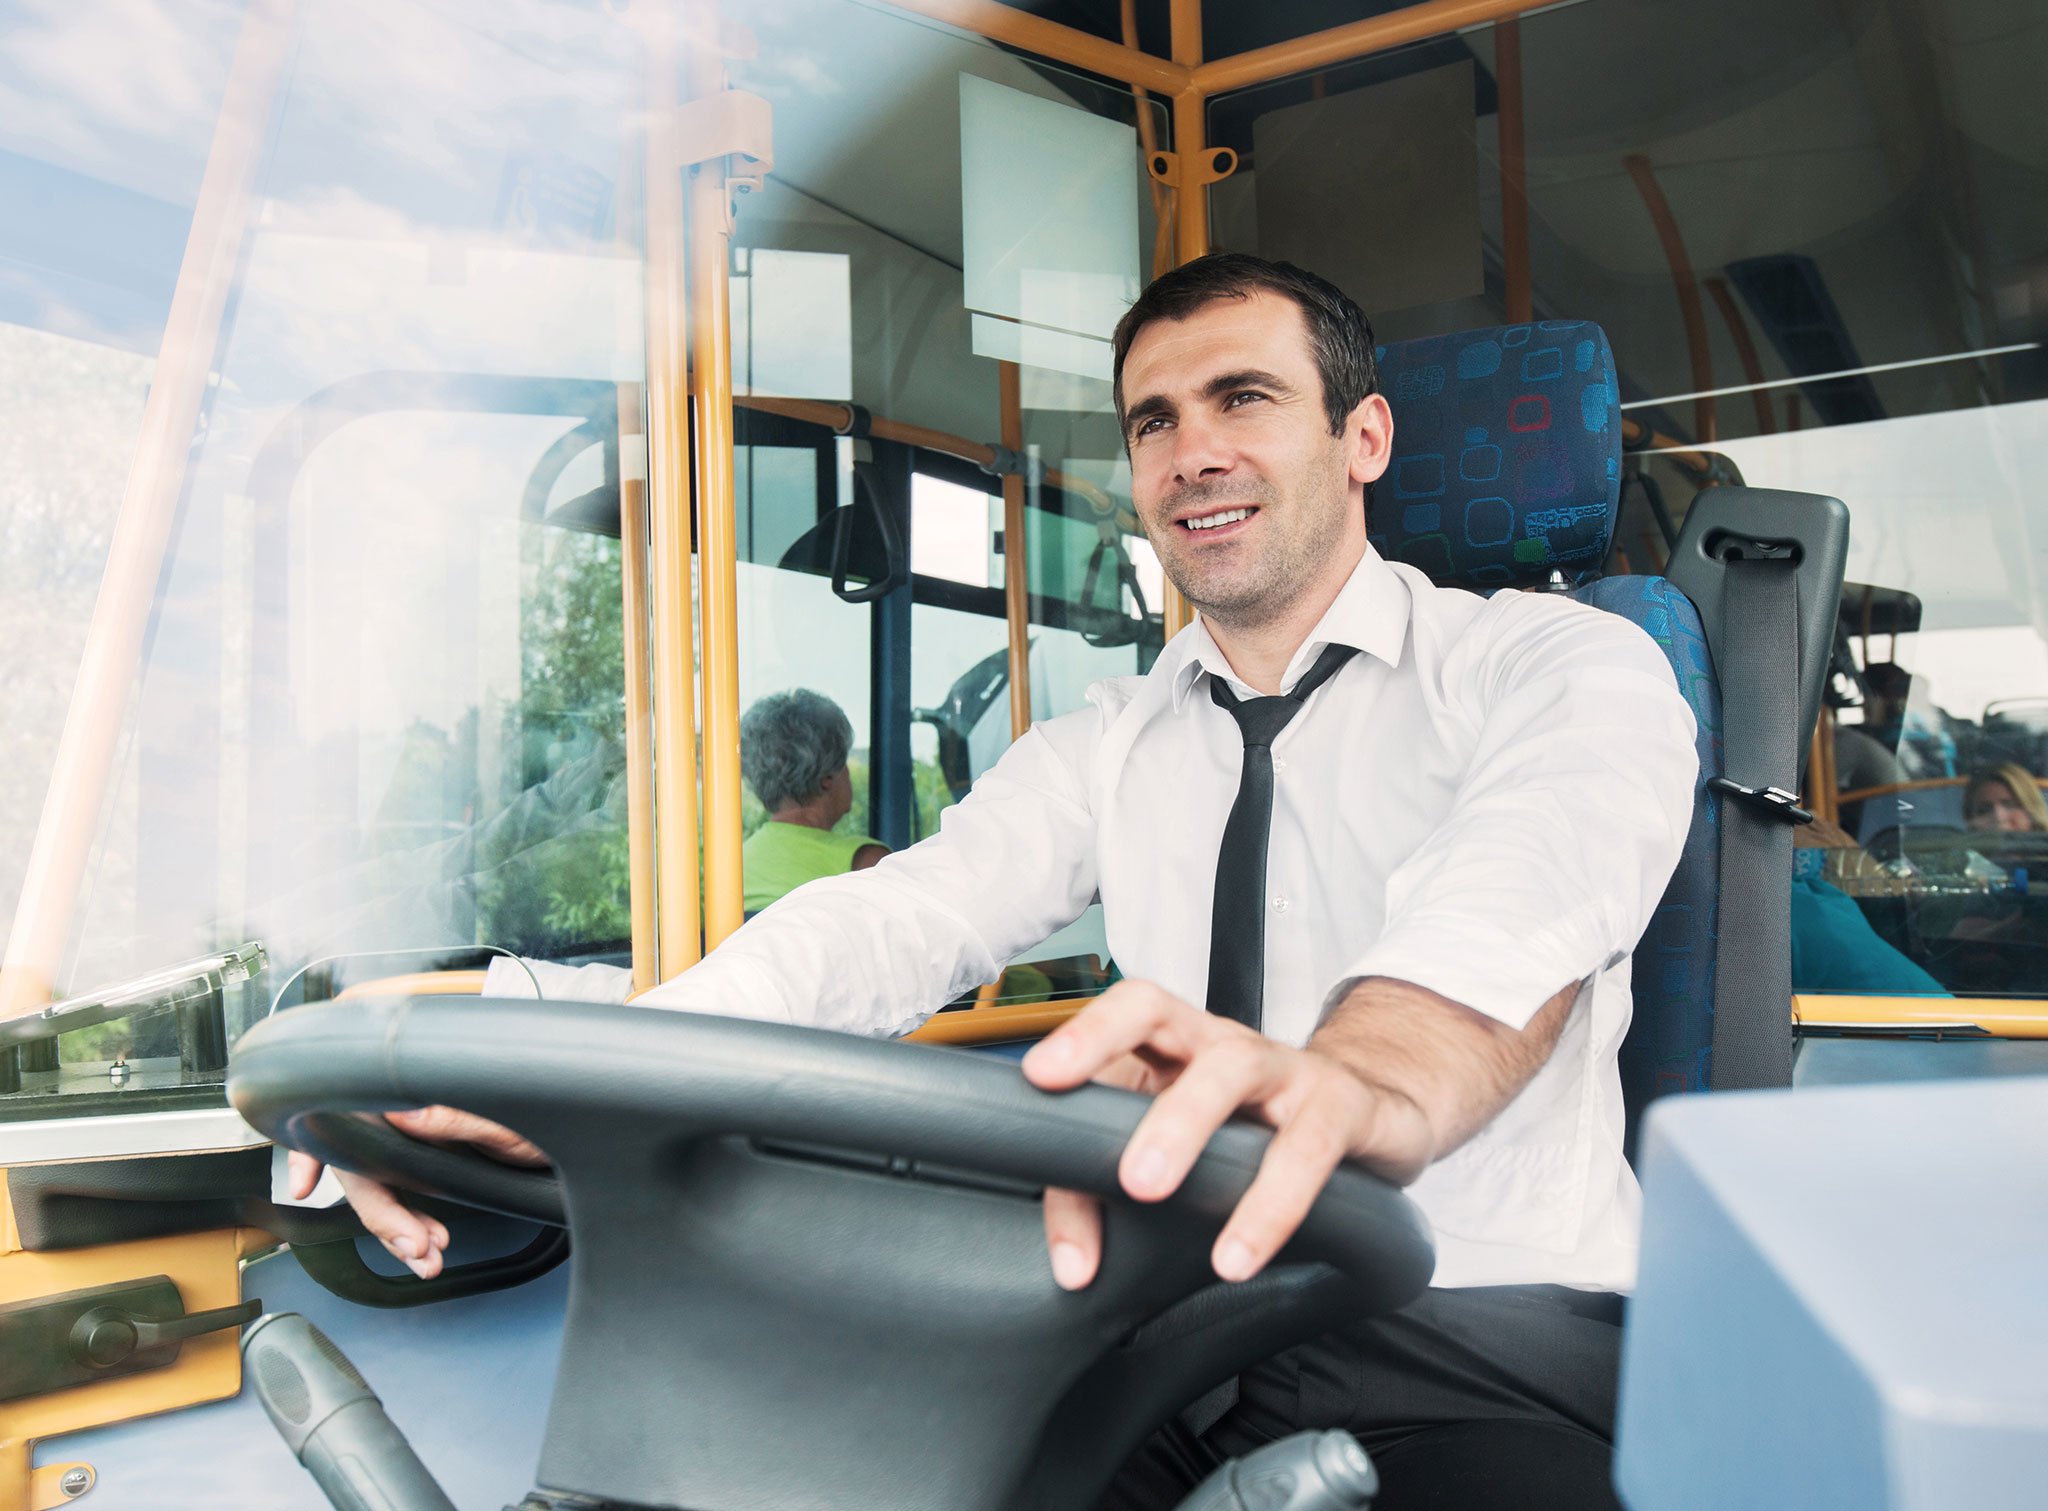 Products-Driver's windows for busses-bus-driver-window-st.jpg